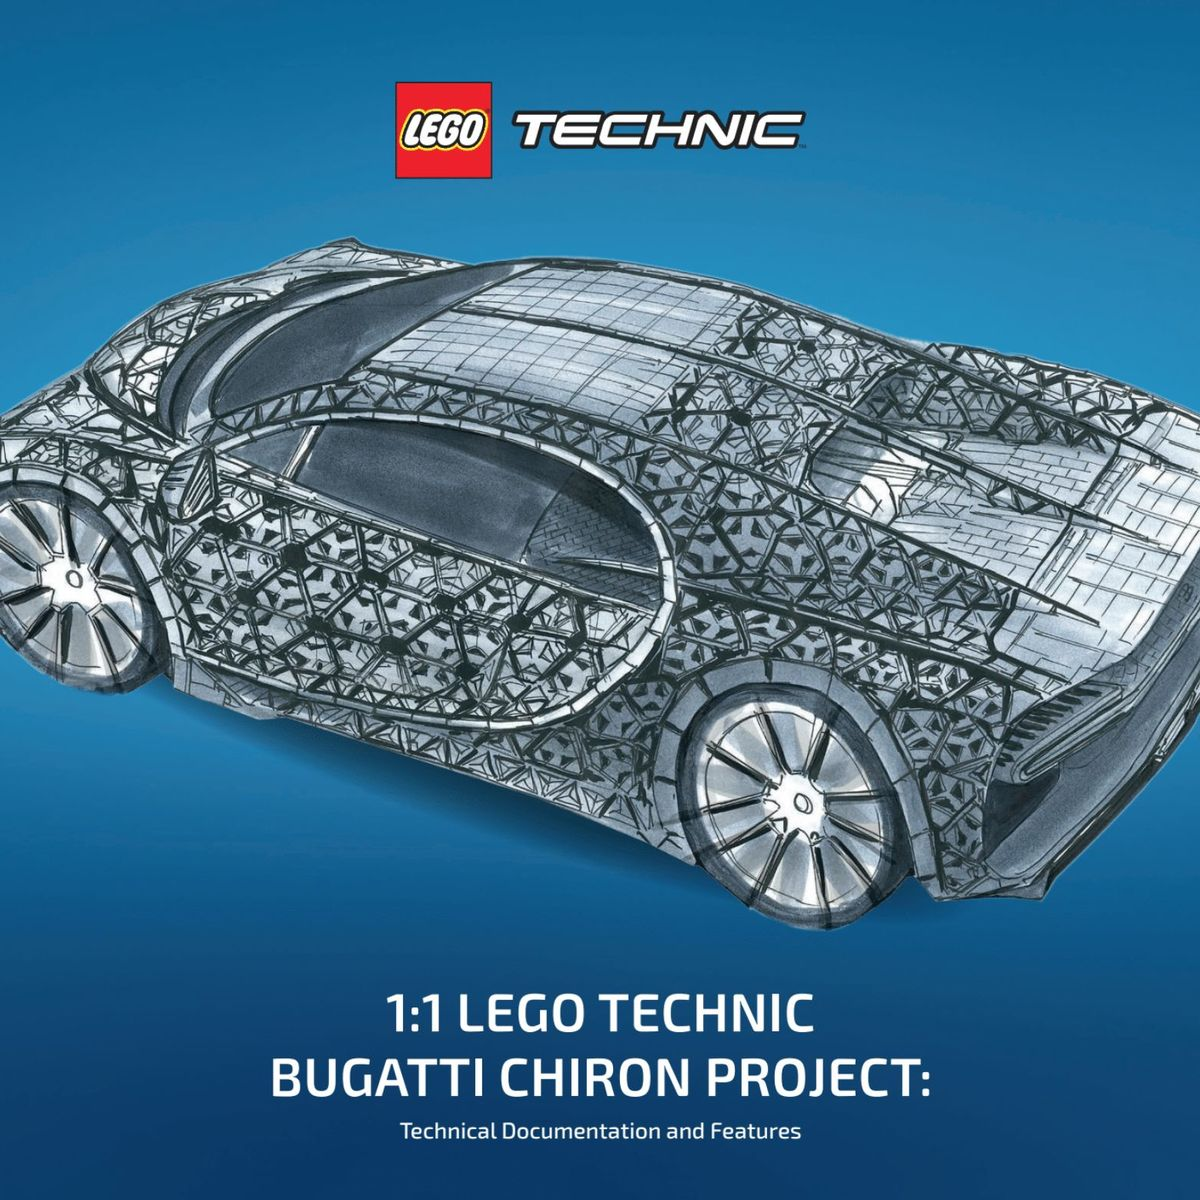 Size LEGO Technic Bugatti Chiron actually drives